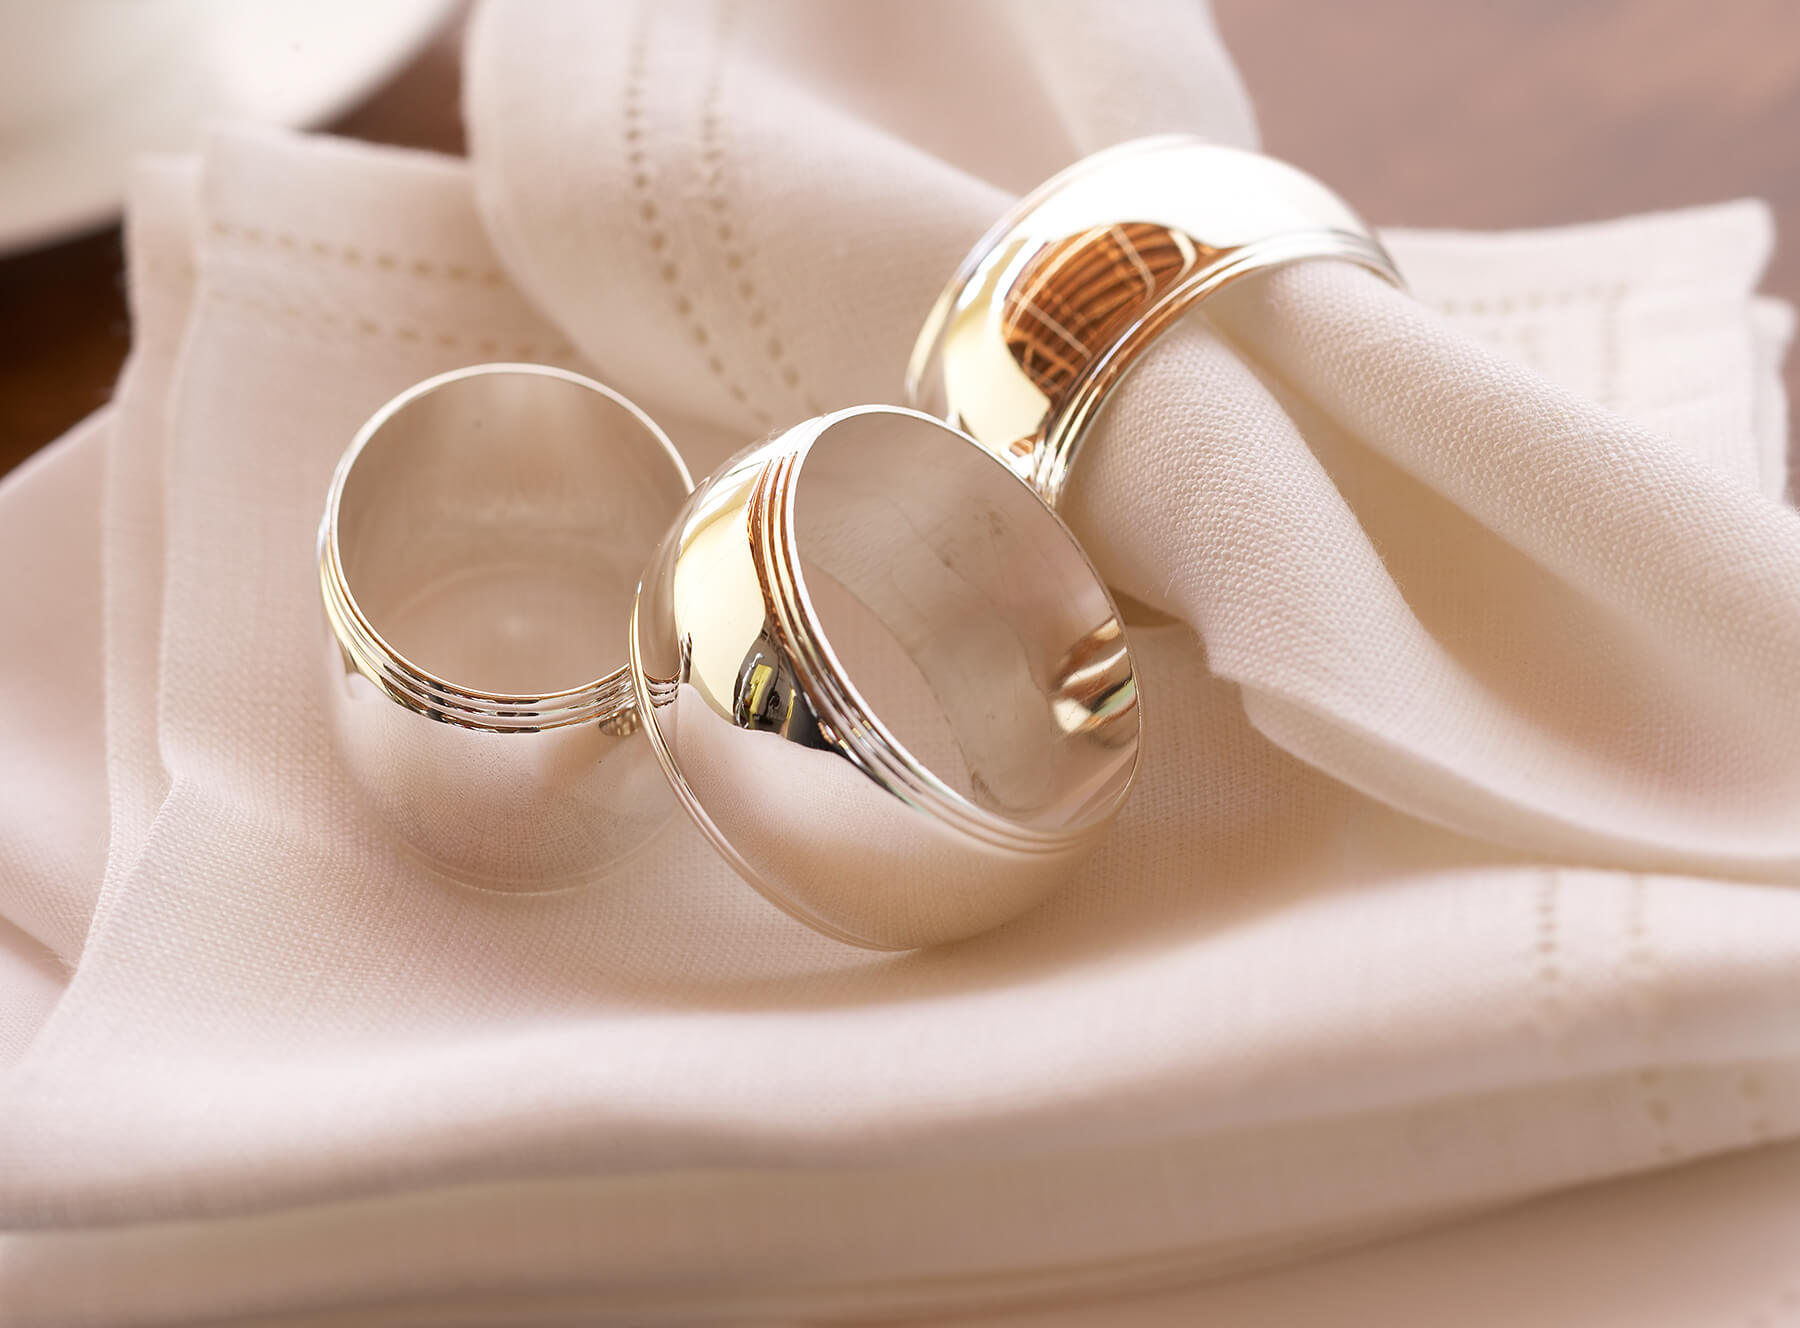 napkin rings interior design photography